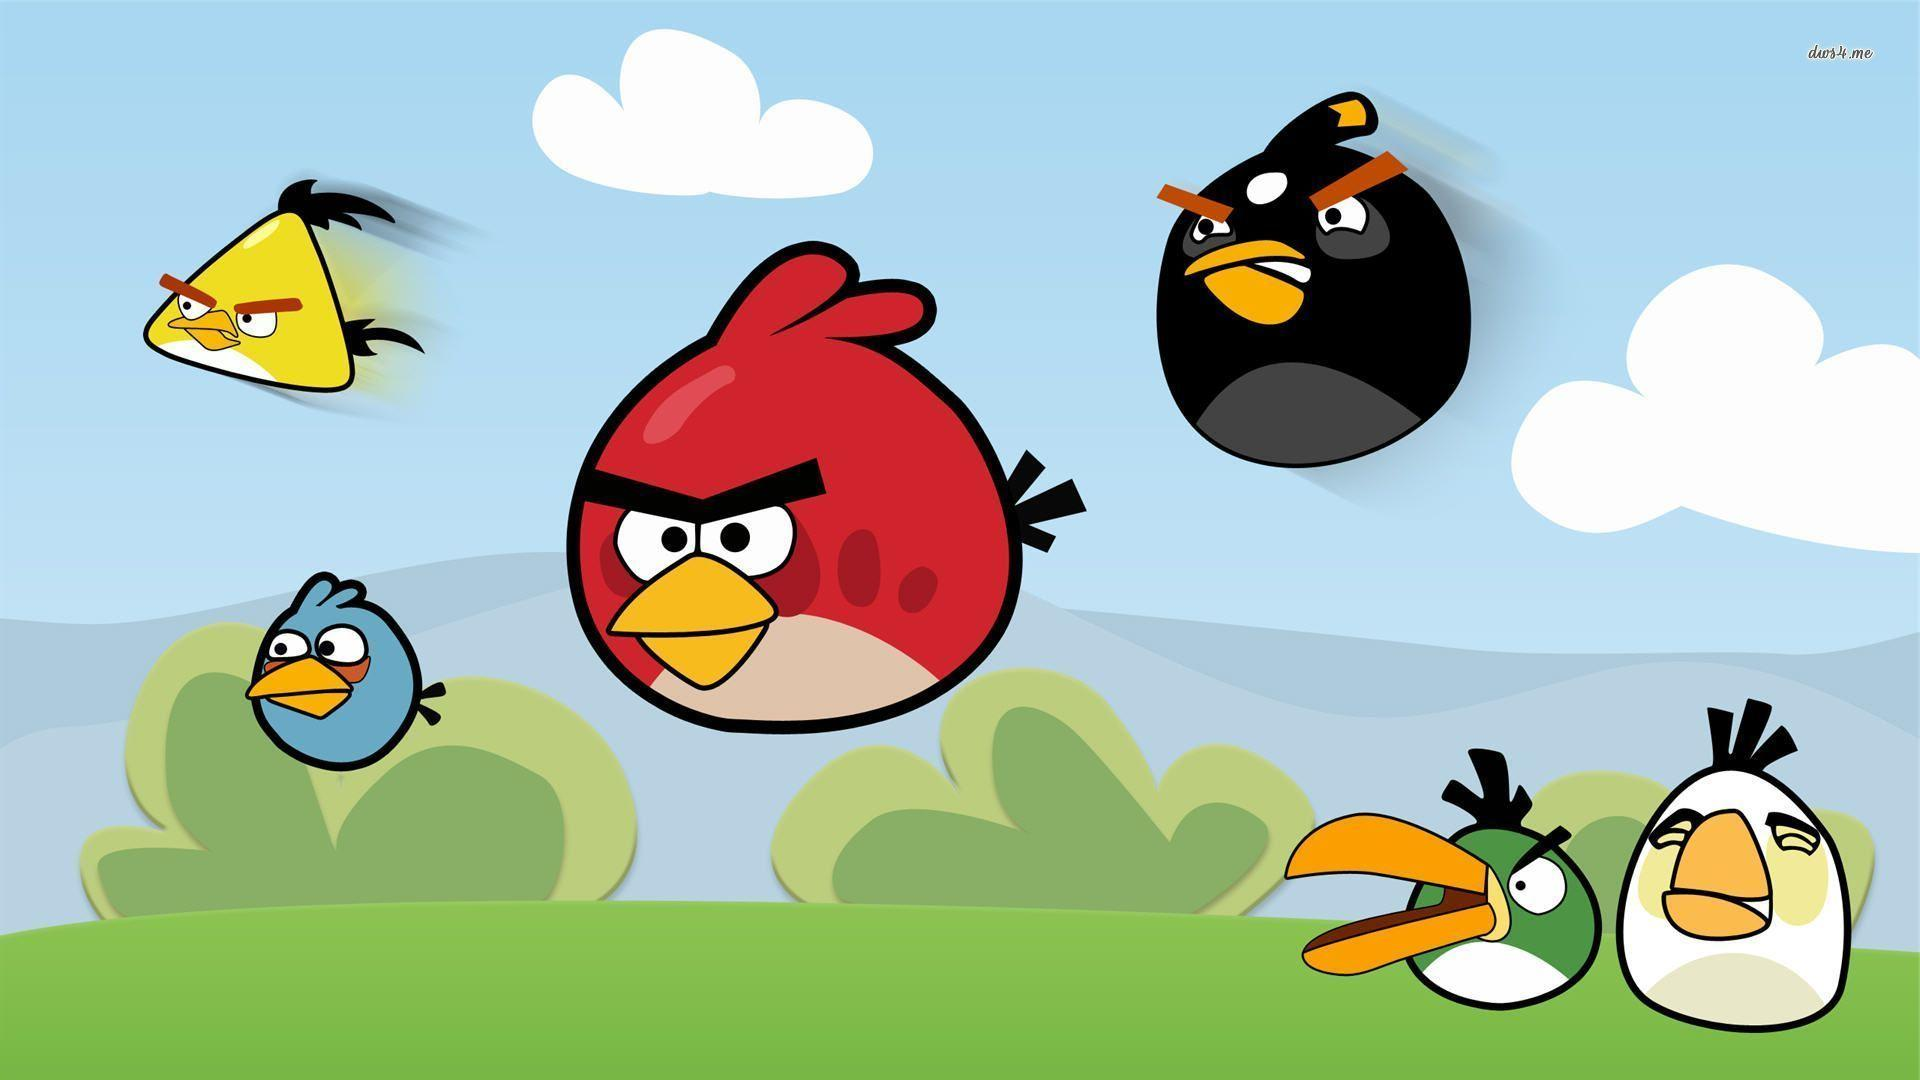 angry birds wallpaper 10 - photo #8